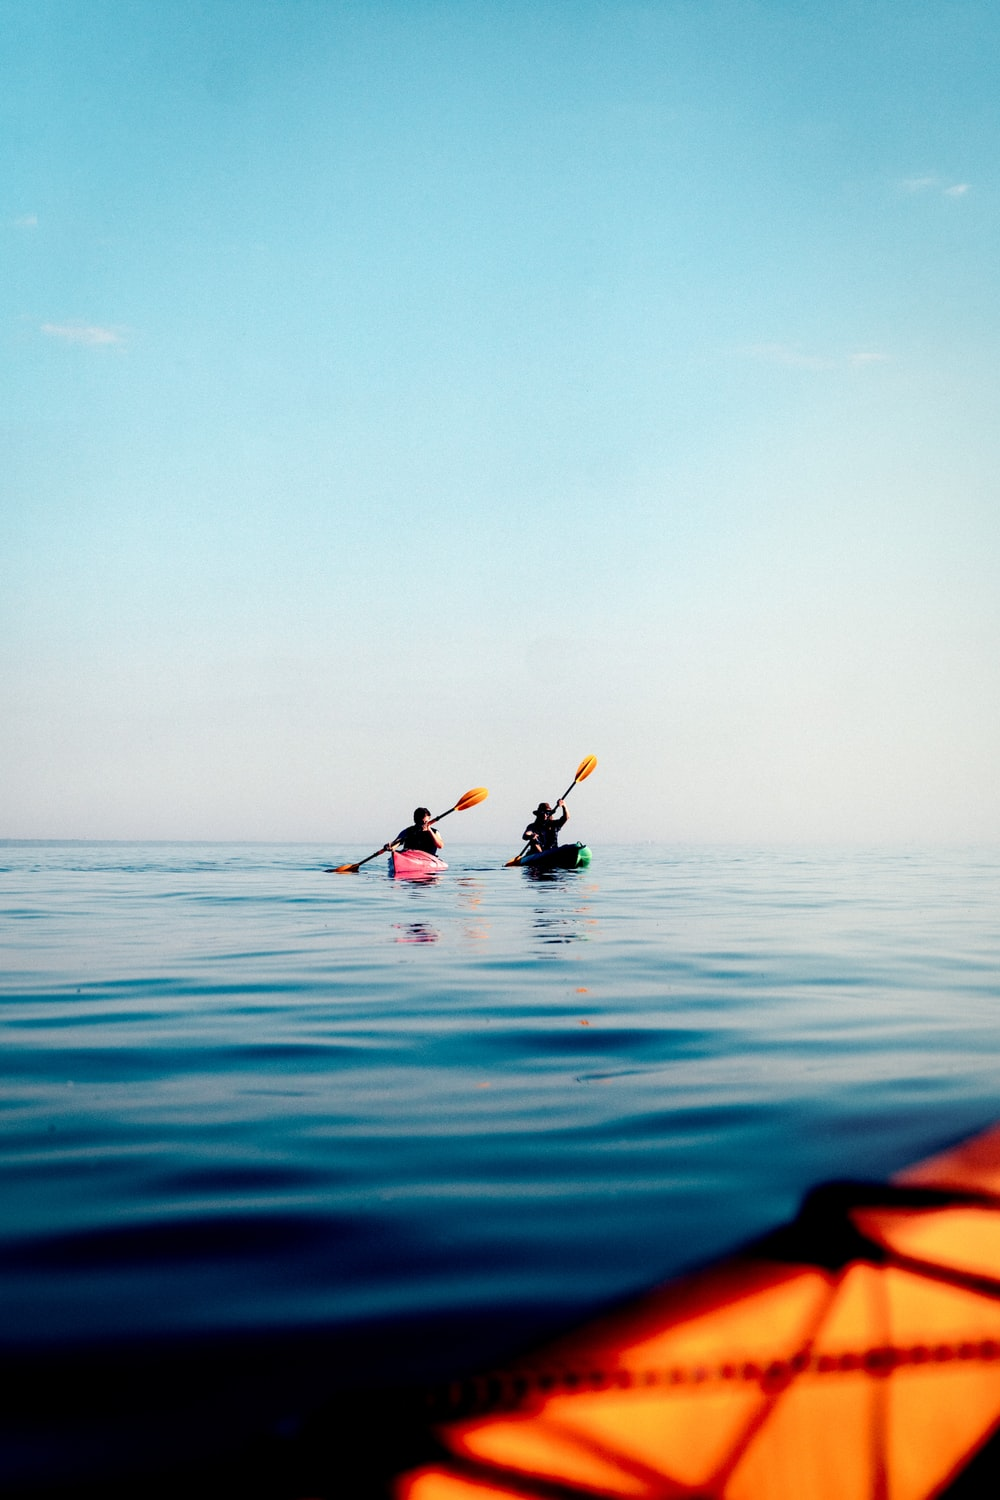 person in black wet suit riding on kayak on blue sea during daytime